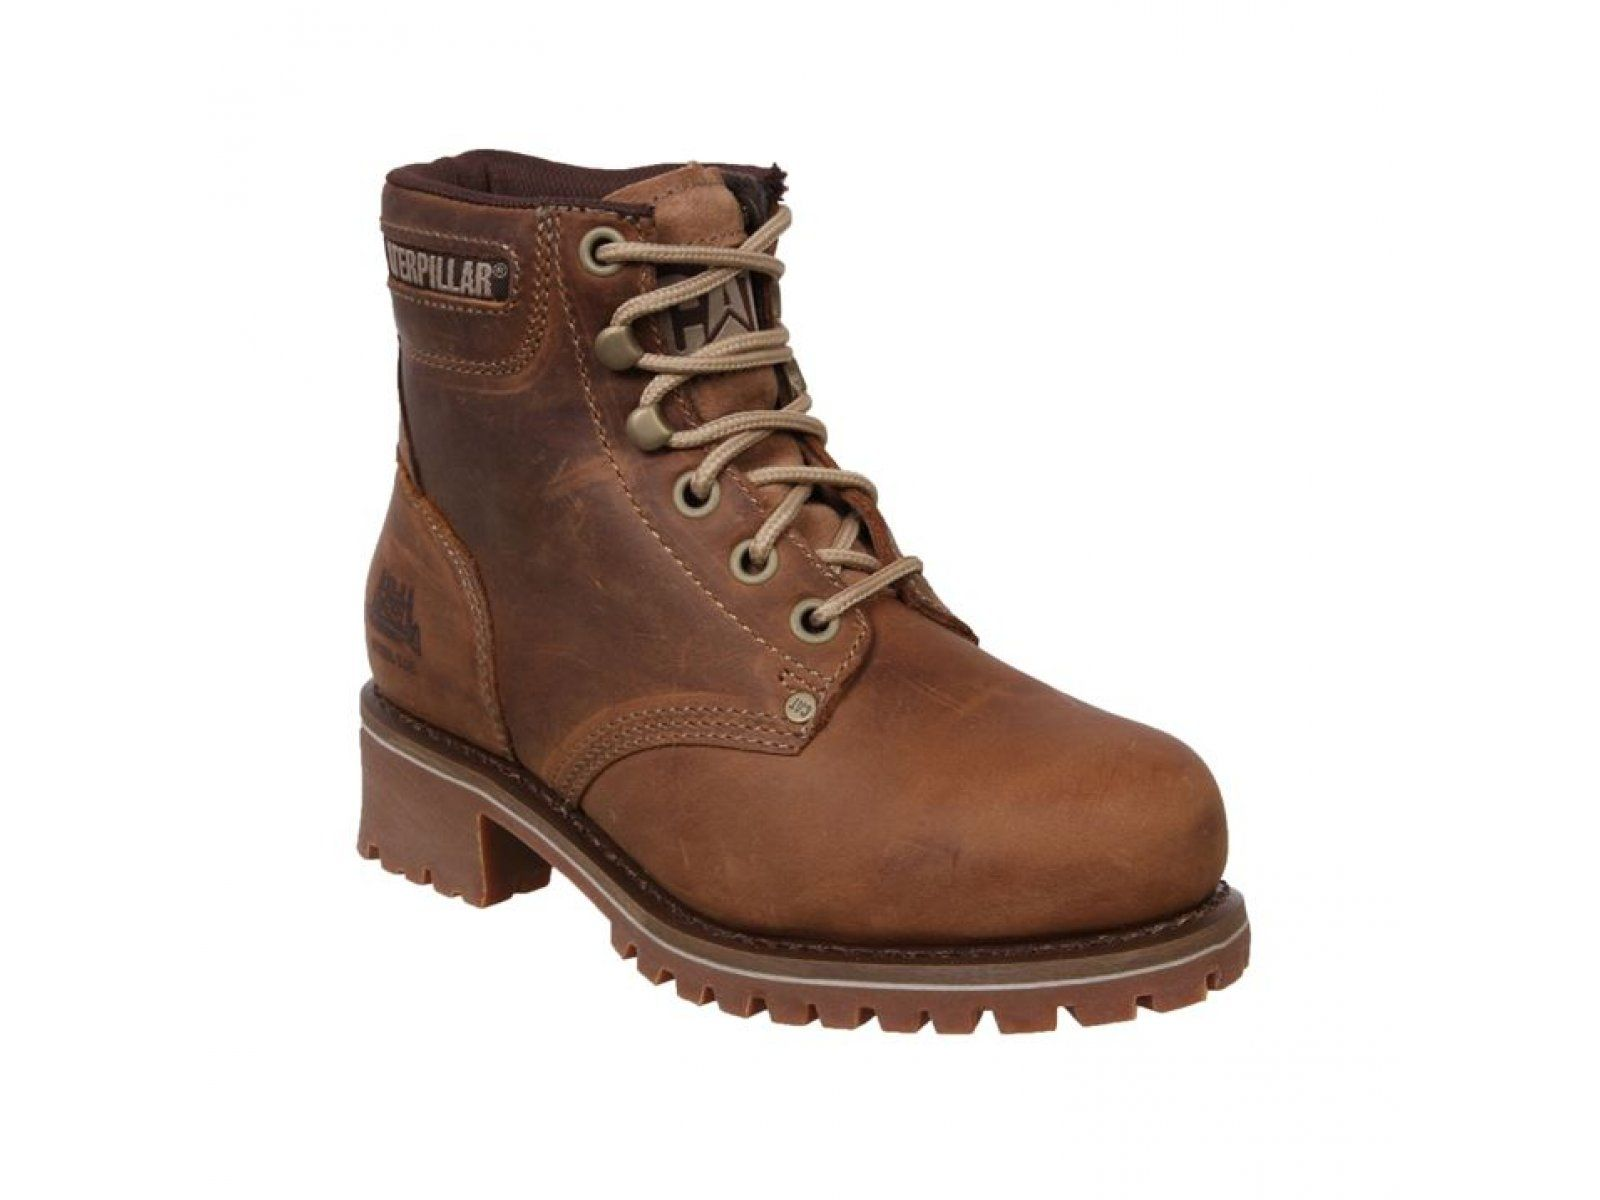 WOMENS-CATERPILLAR-CAT-LOGGER-LEATHER-STEEL-TOE-CAP-SAFETY-WORK-BOOTS-SIZE-3-8  More d3cfc2db4f